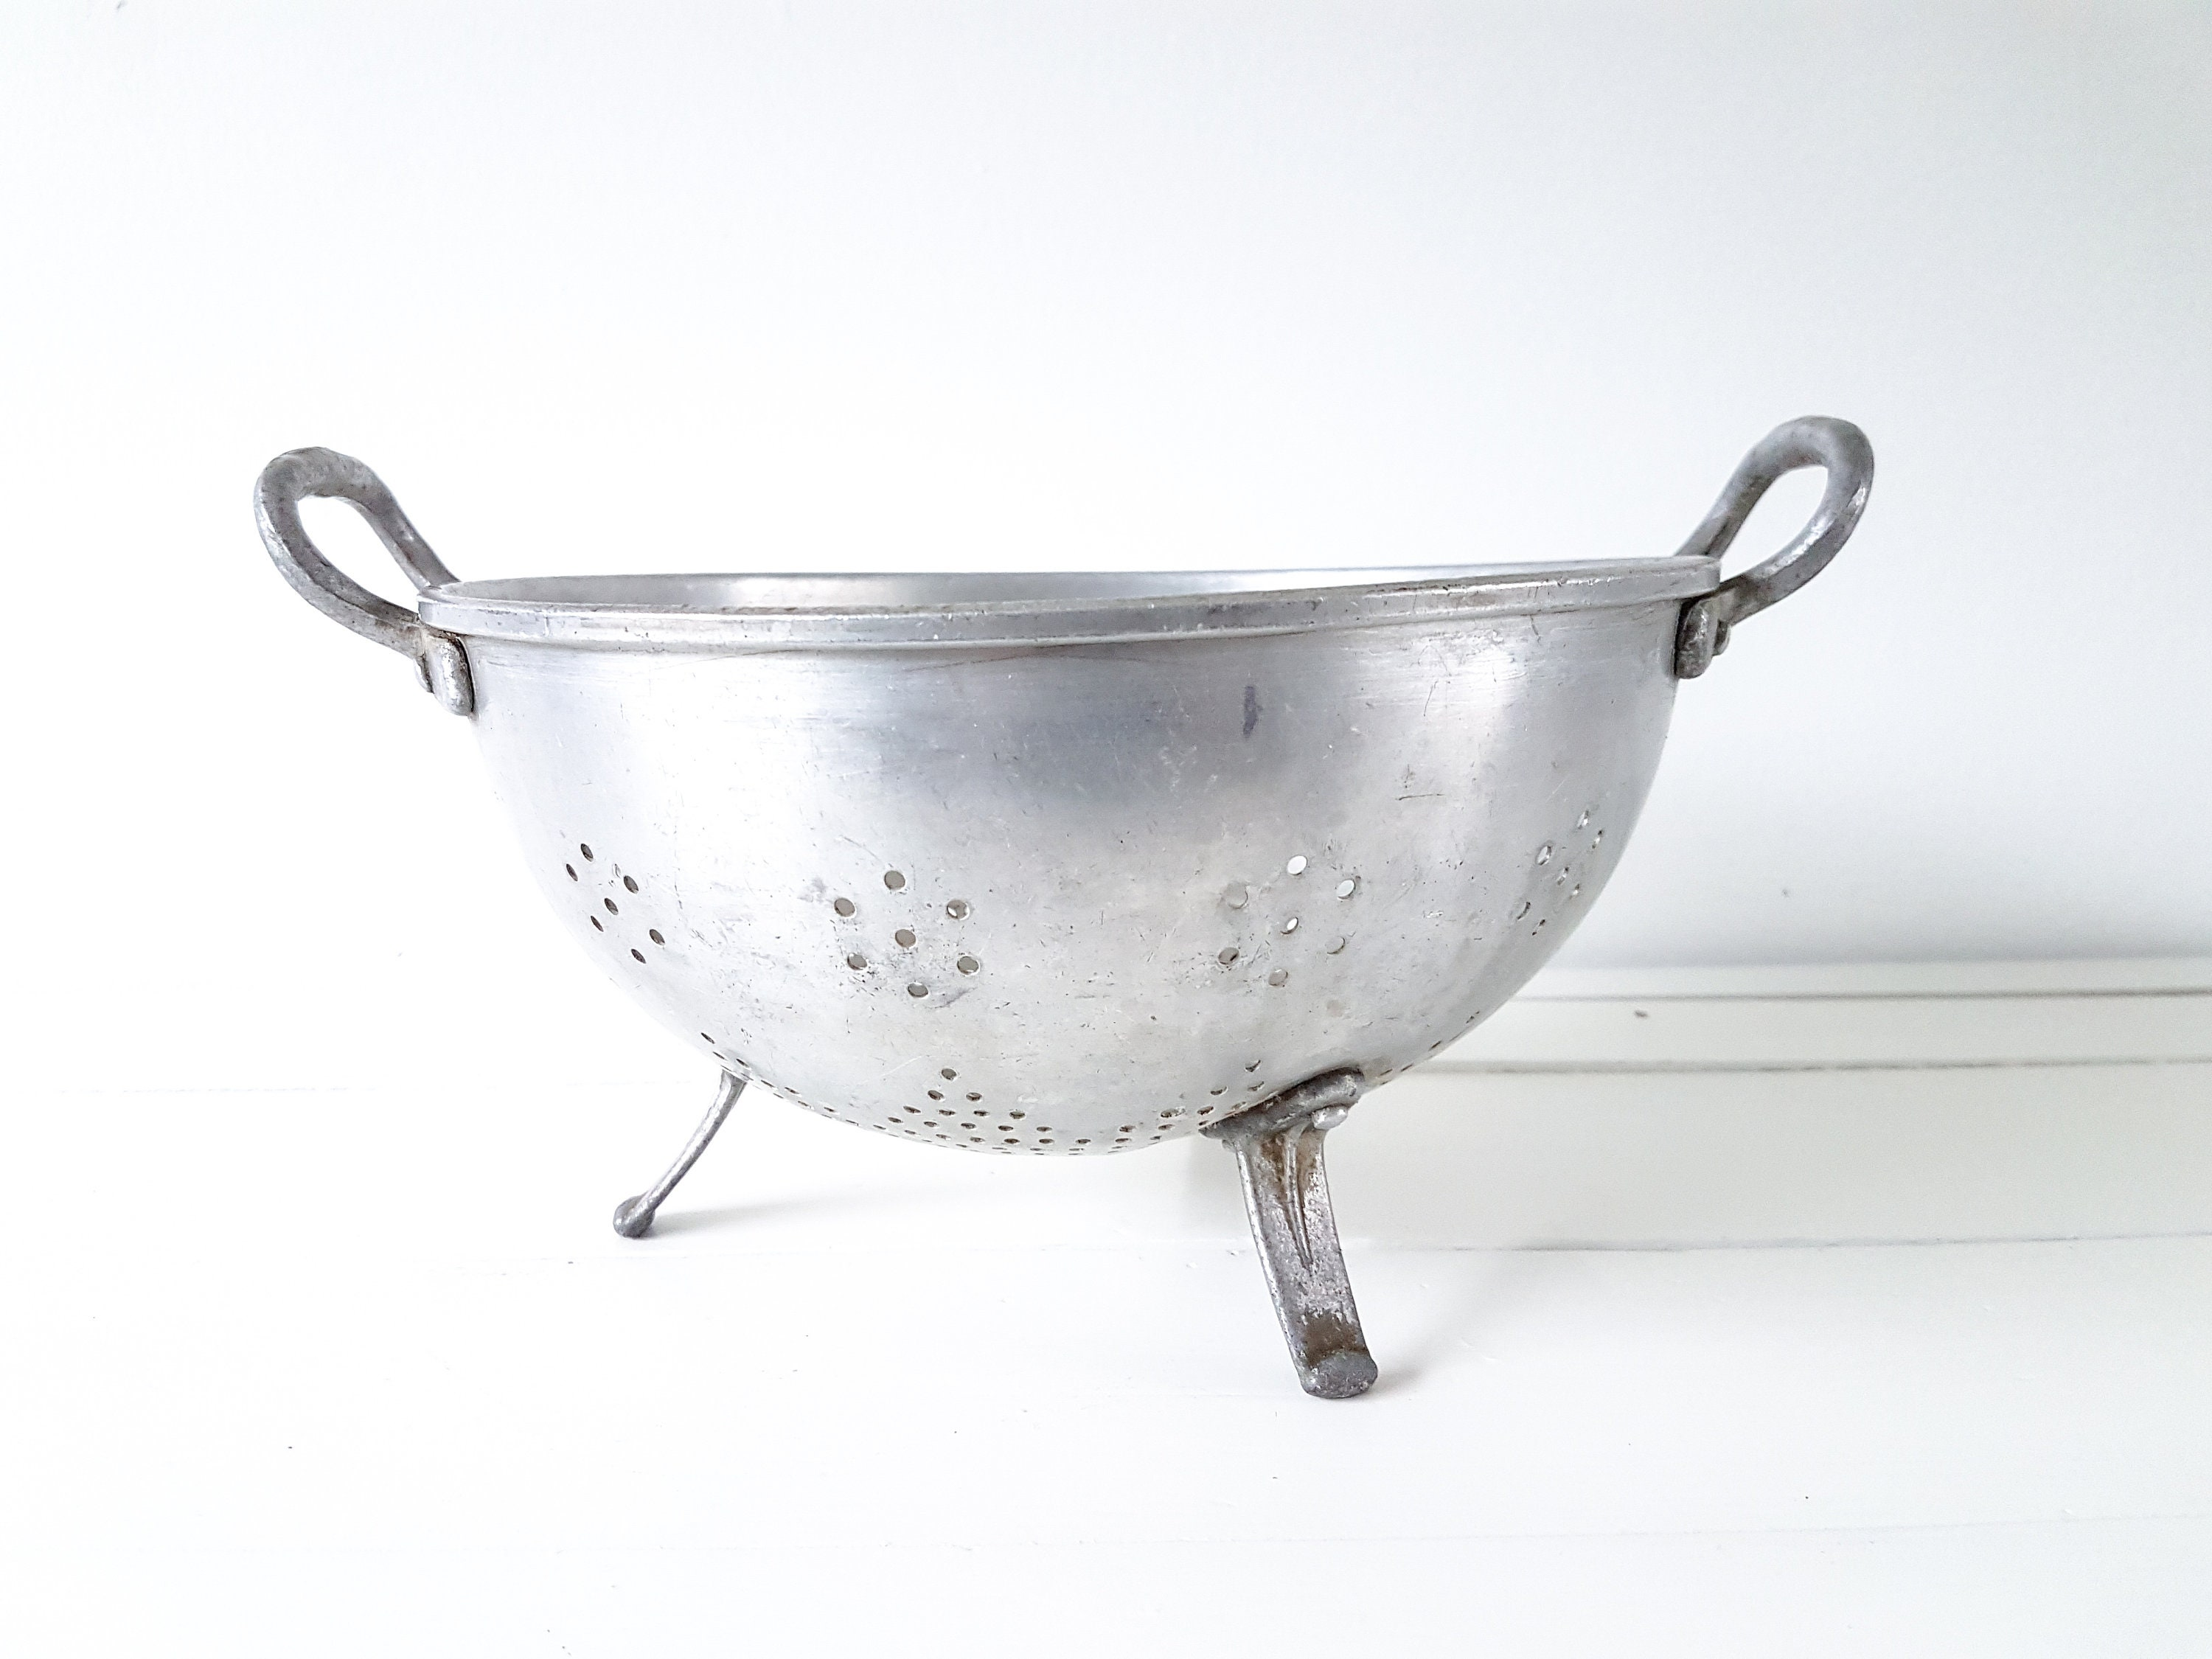 Vintage Aluminum Footed Colander French Kitchen Strainer